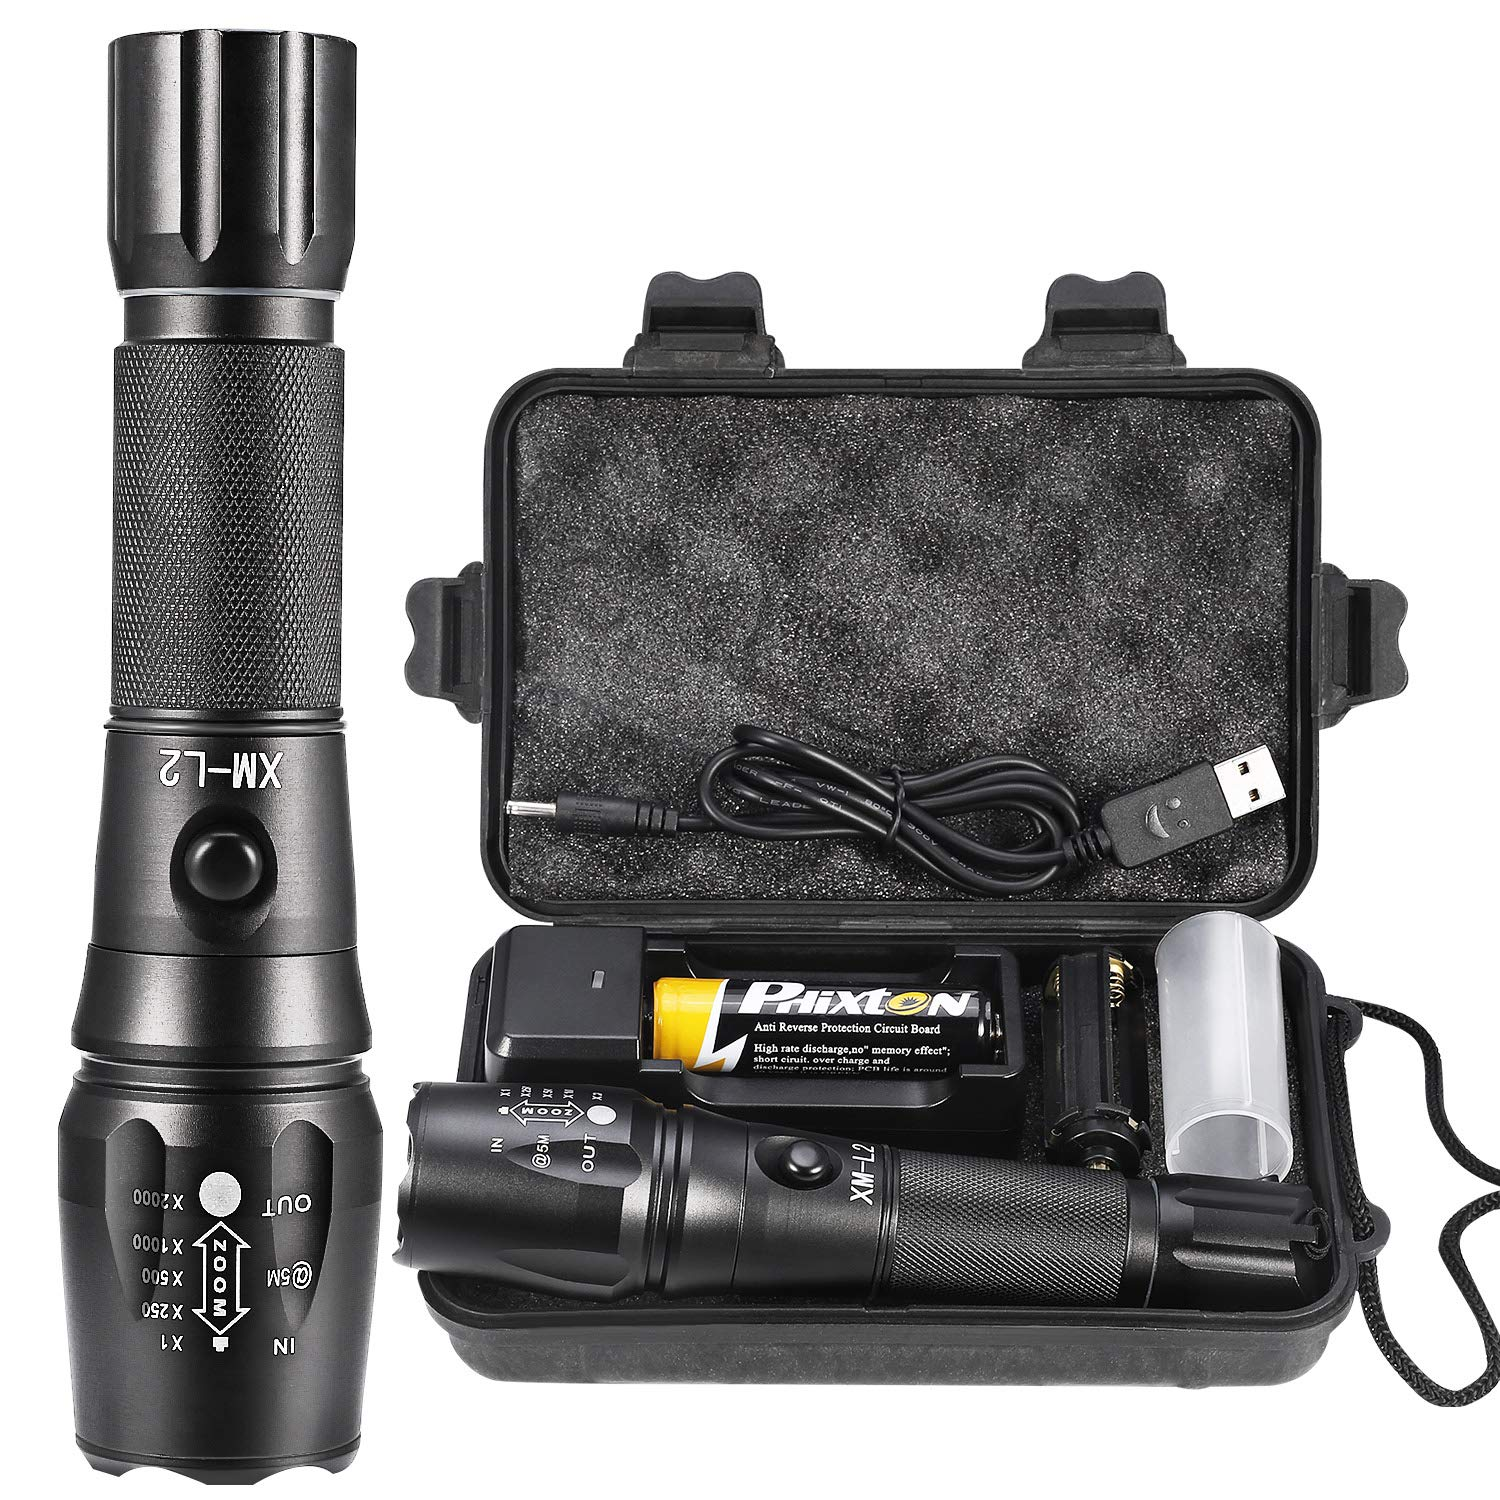 Rechargeable Tactical Flashlight High Lumens LED Torch Powerful Handheld Big L2 Water Resistant Adjustable 5 Modes Portable Metal Flash Light 5000mAh 18650 Battery Charger USB Cable Gift Box Included